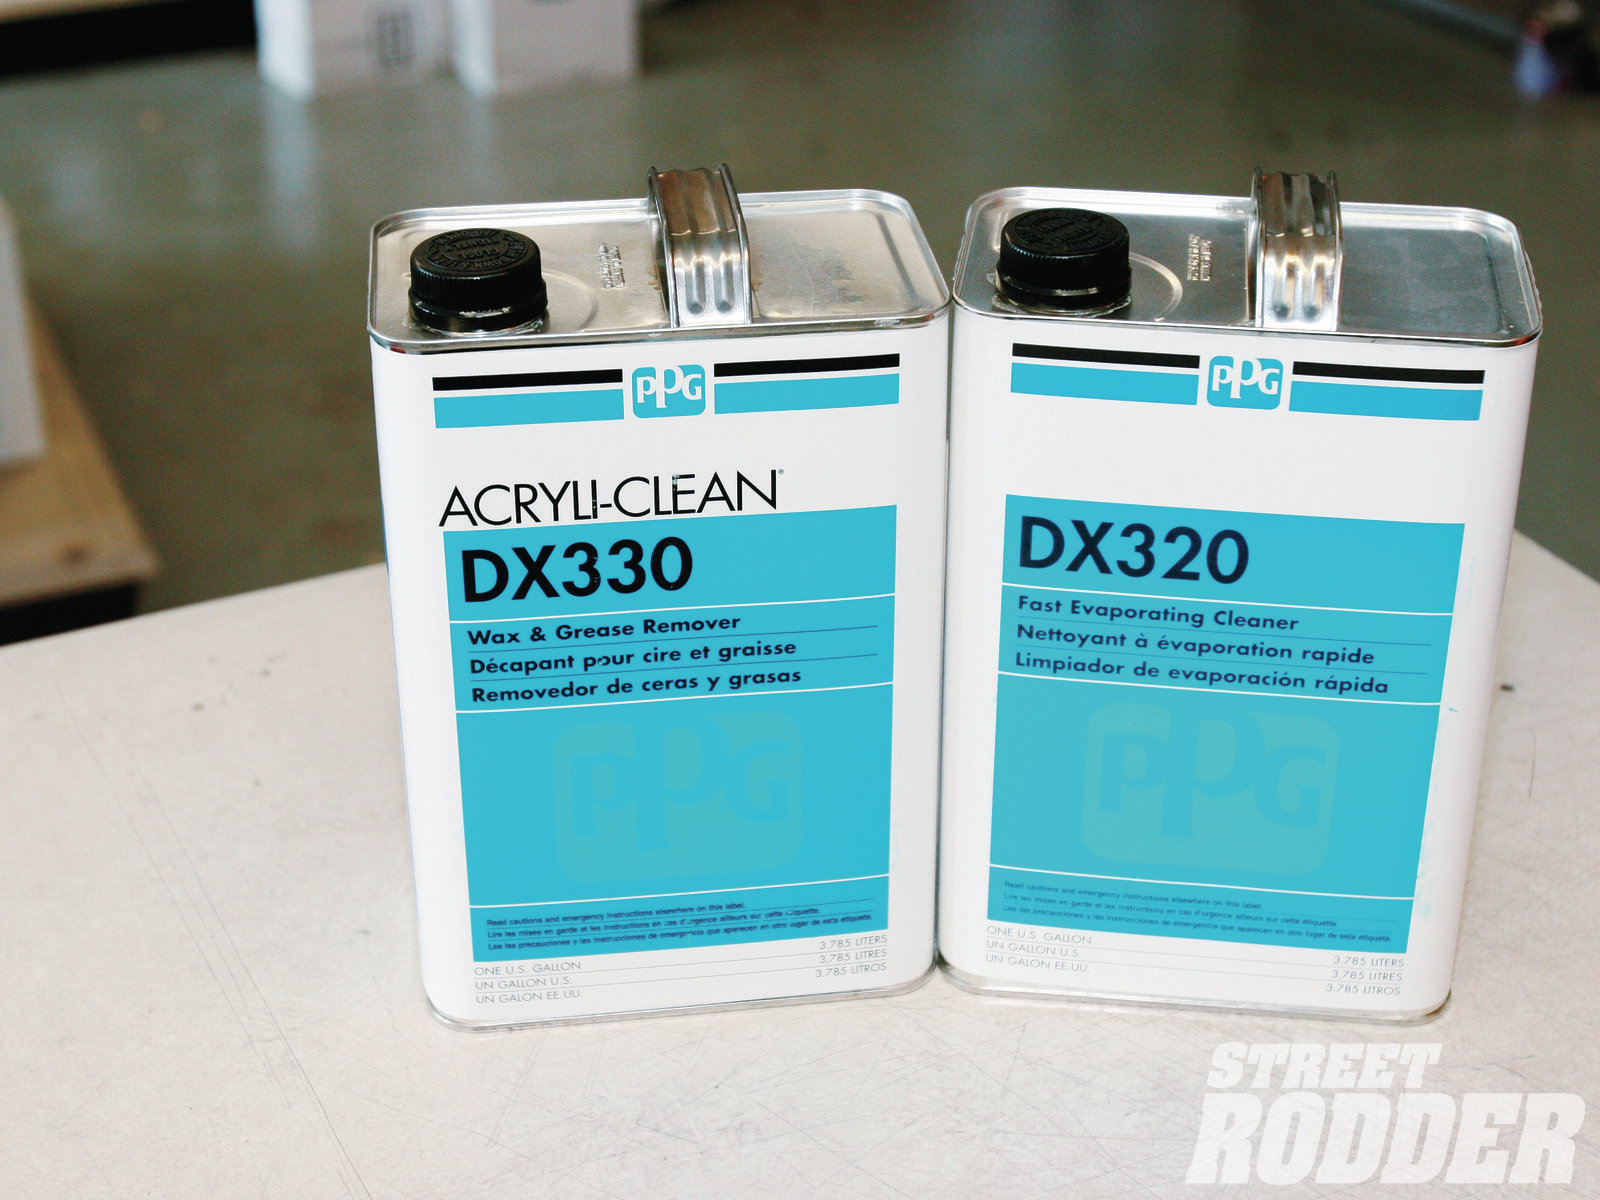 DX 330 cleaners are used to remove surface contaminants such as wax, grease, silicones, and others—it should be used before and after sanding. DX320 should be used as a final cleaner before applying paint.